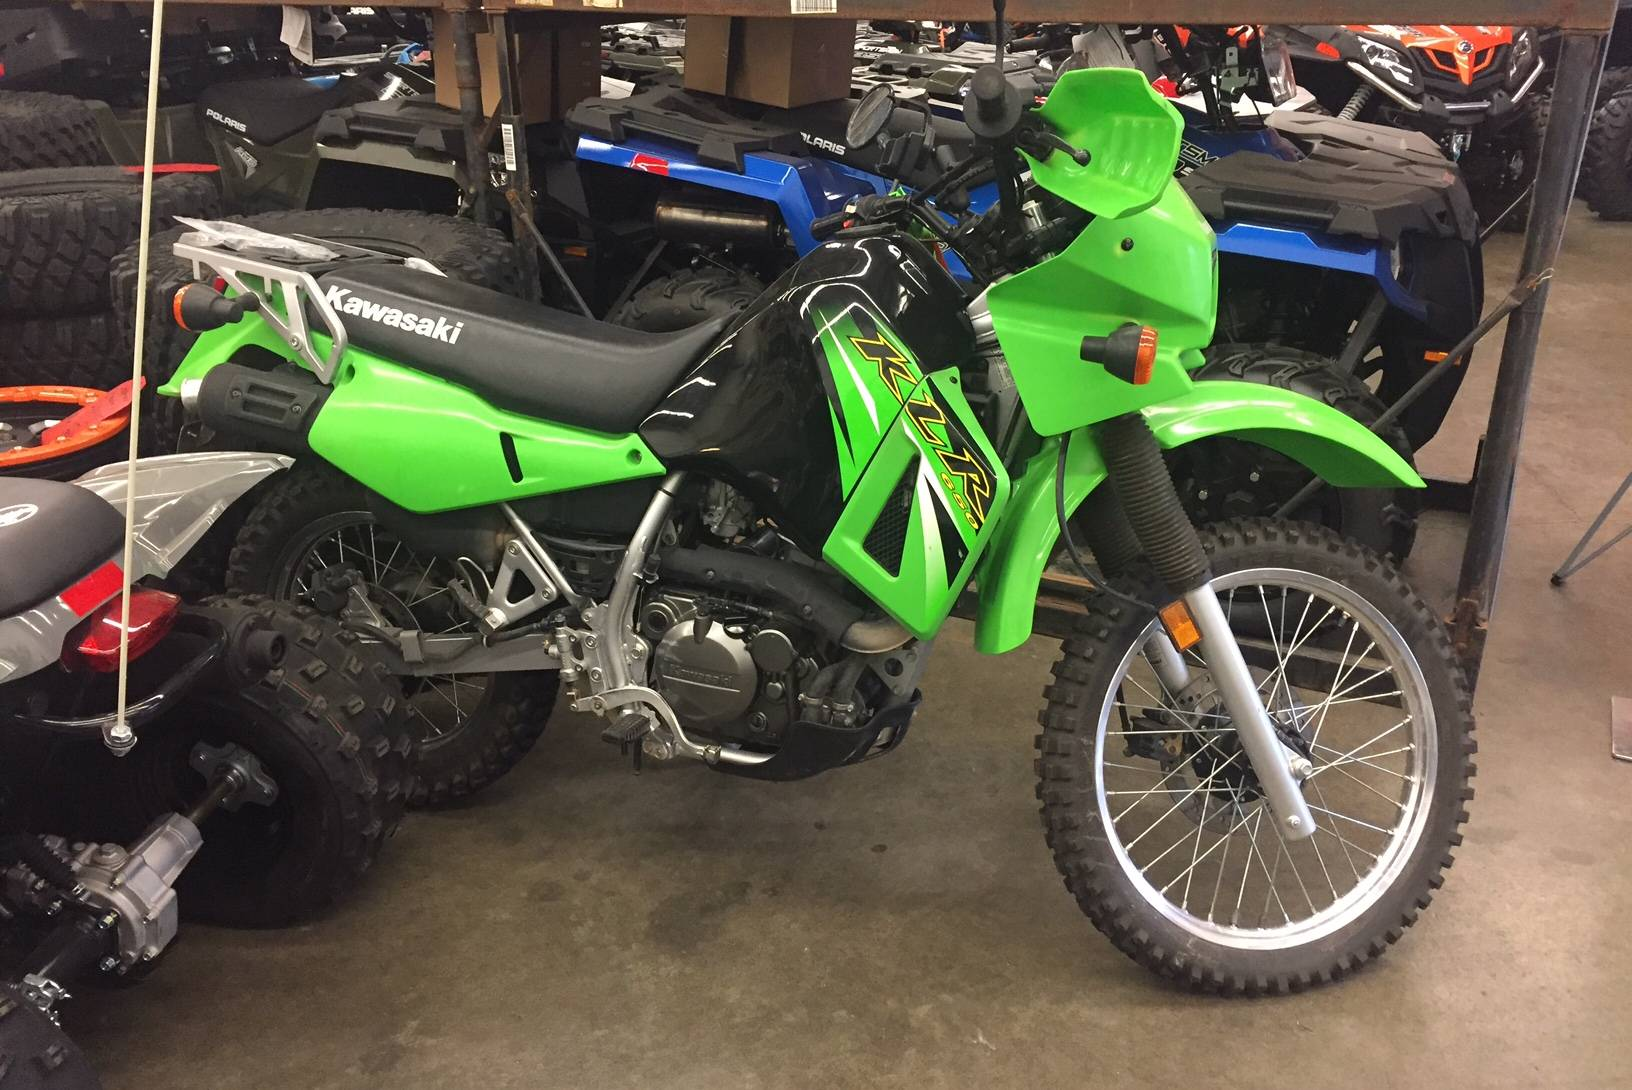 2006 Kawasaki KLR650 in Monroe, Washington